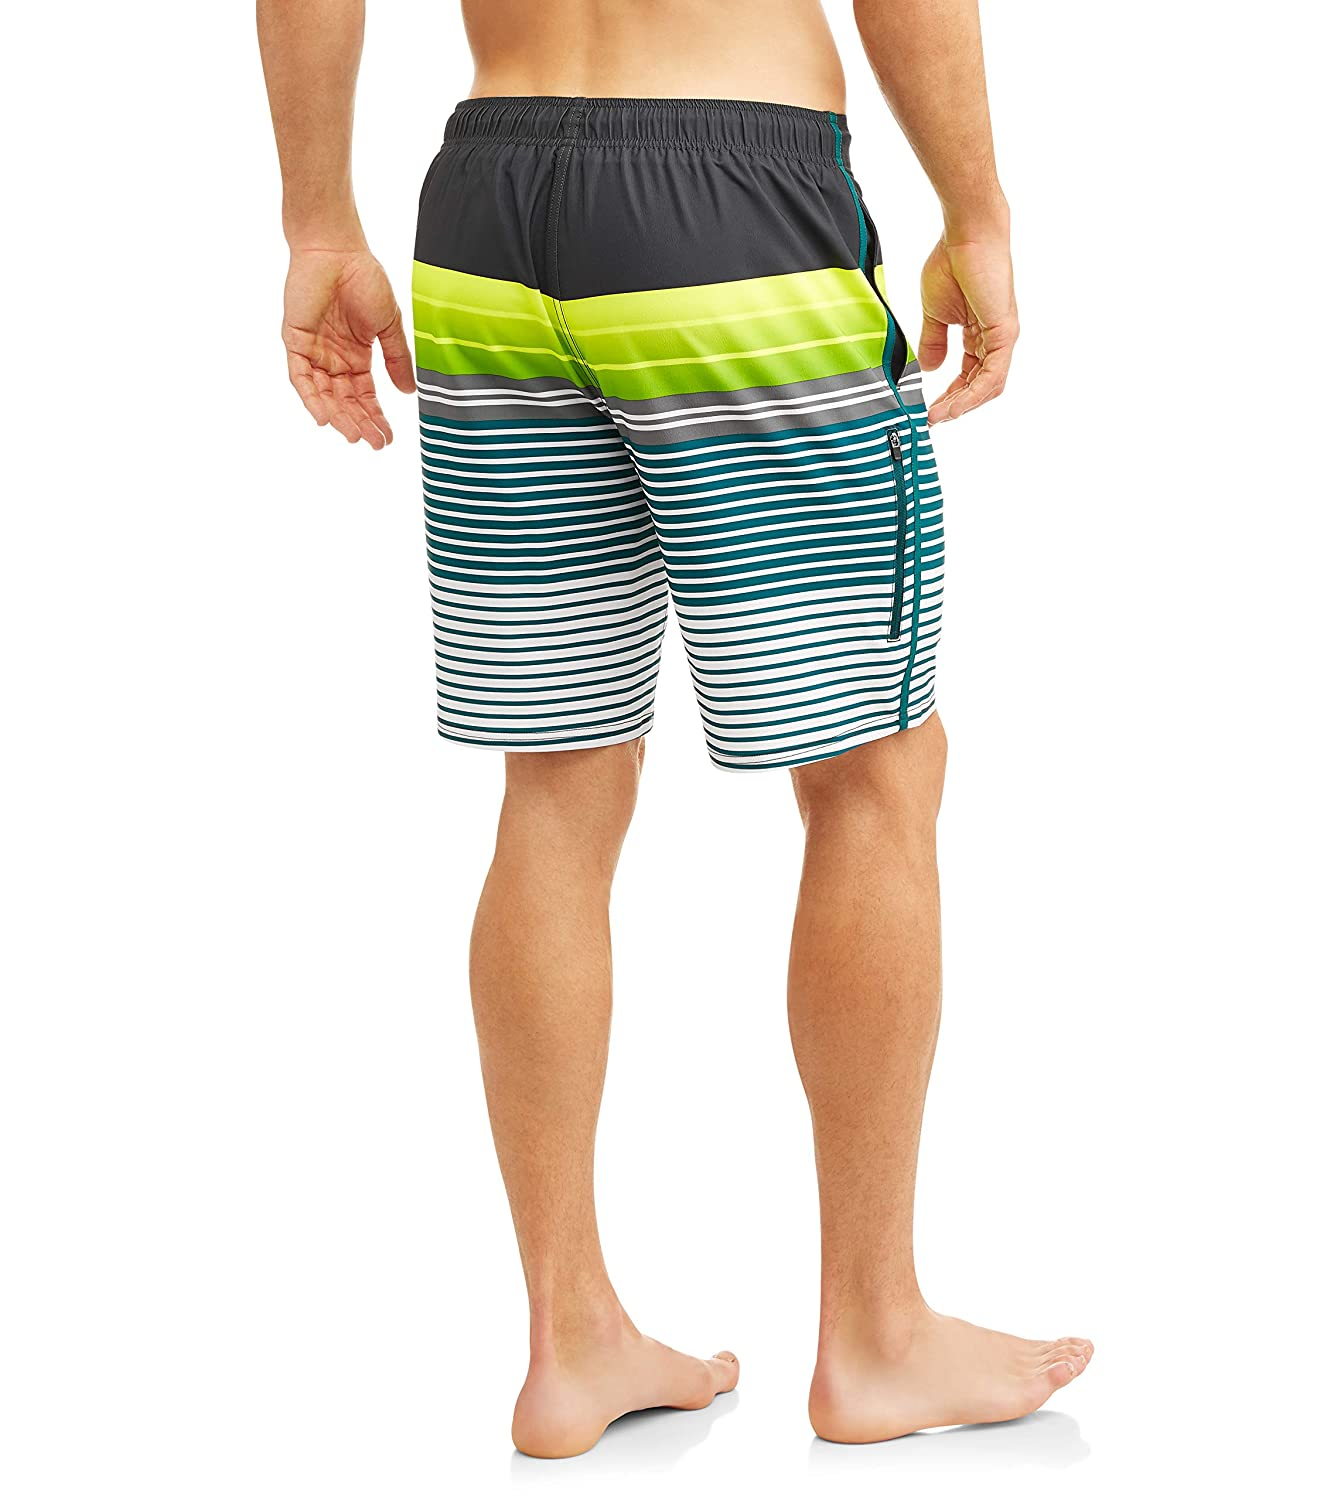 George Teal Taunt Stripe Above The Knee 8 Inseam Eboard Swim Short Trunks